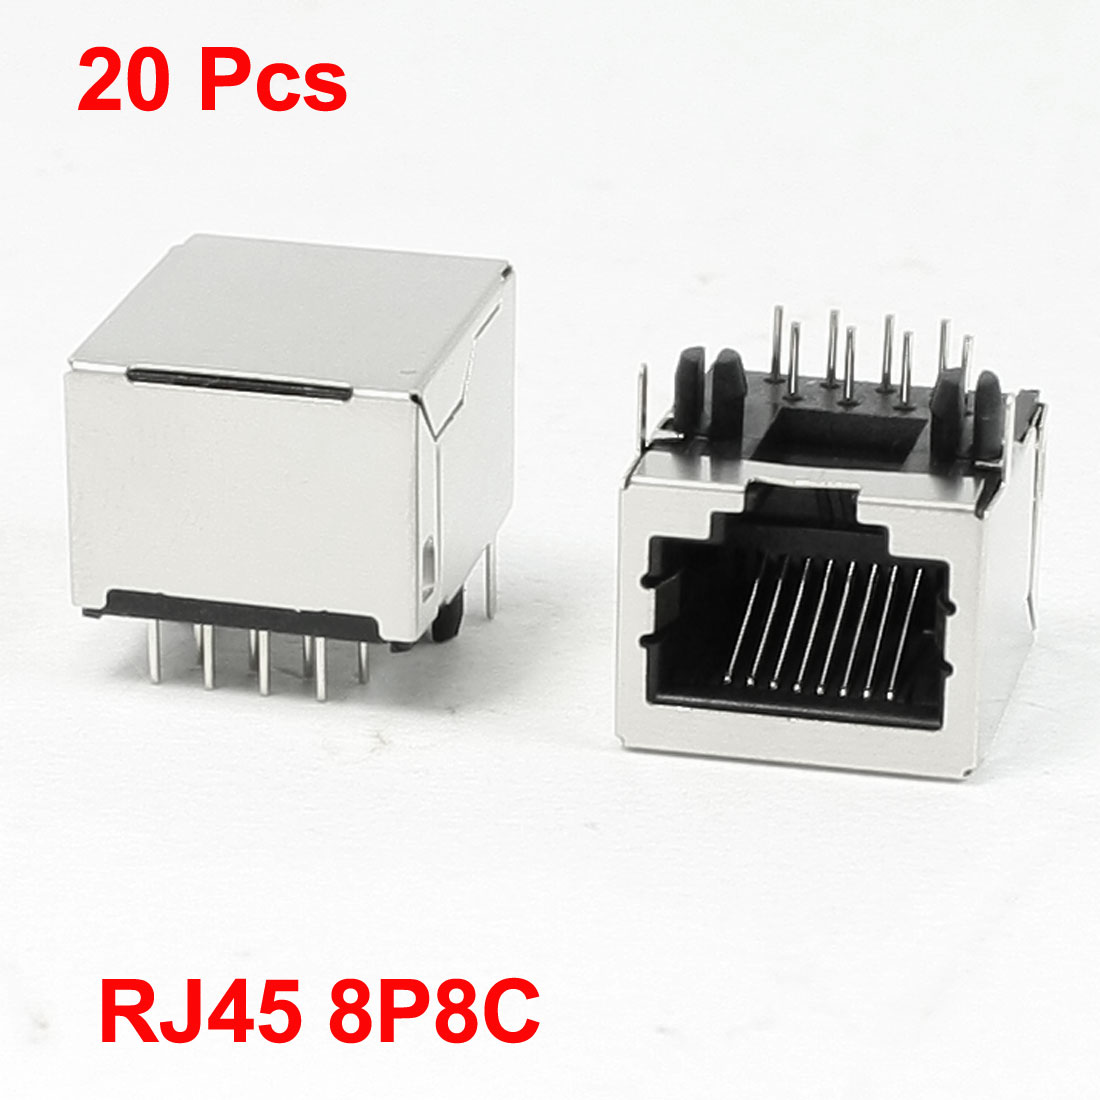 "20 Pcs Stainless Steel Shell 8P8C RJ45 PCB Jack Connector 0.7"" x 0.6"" x 0.5"""